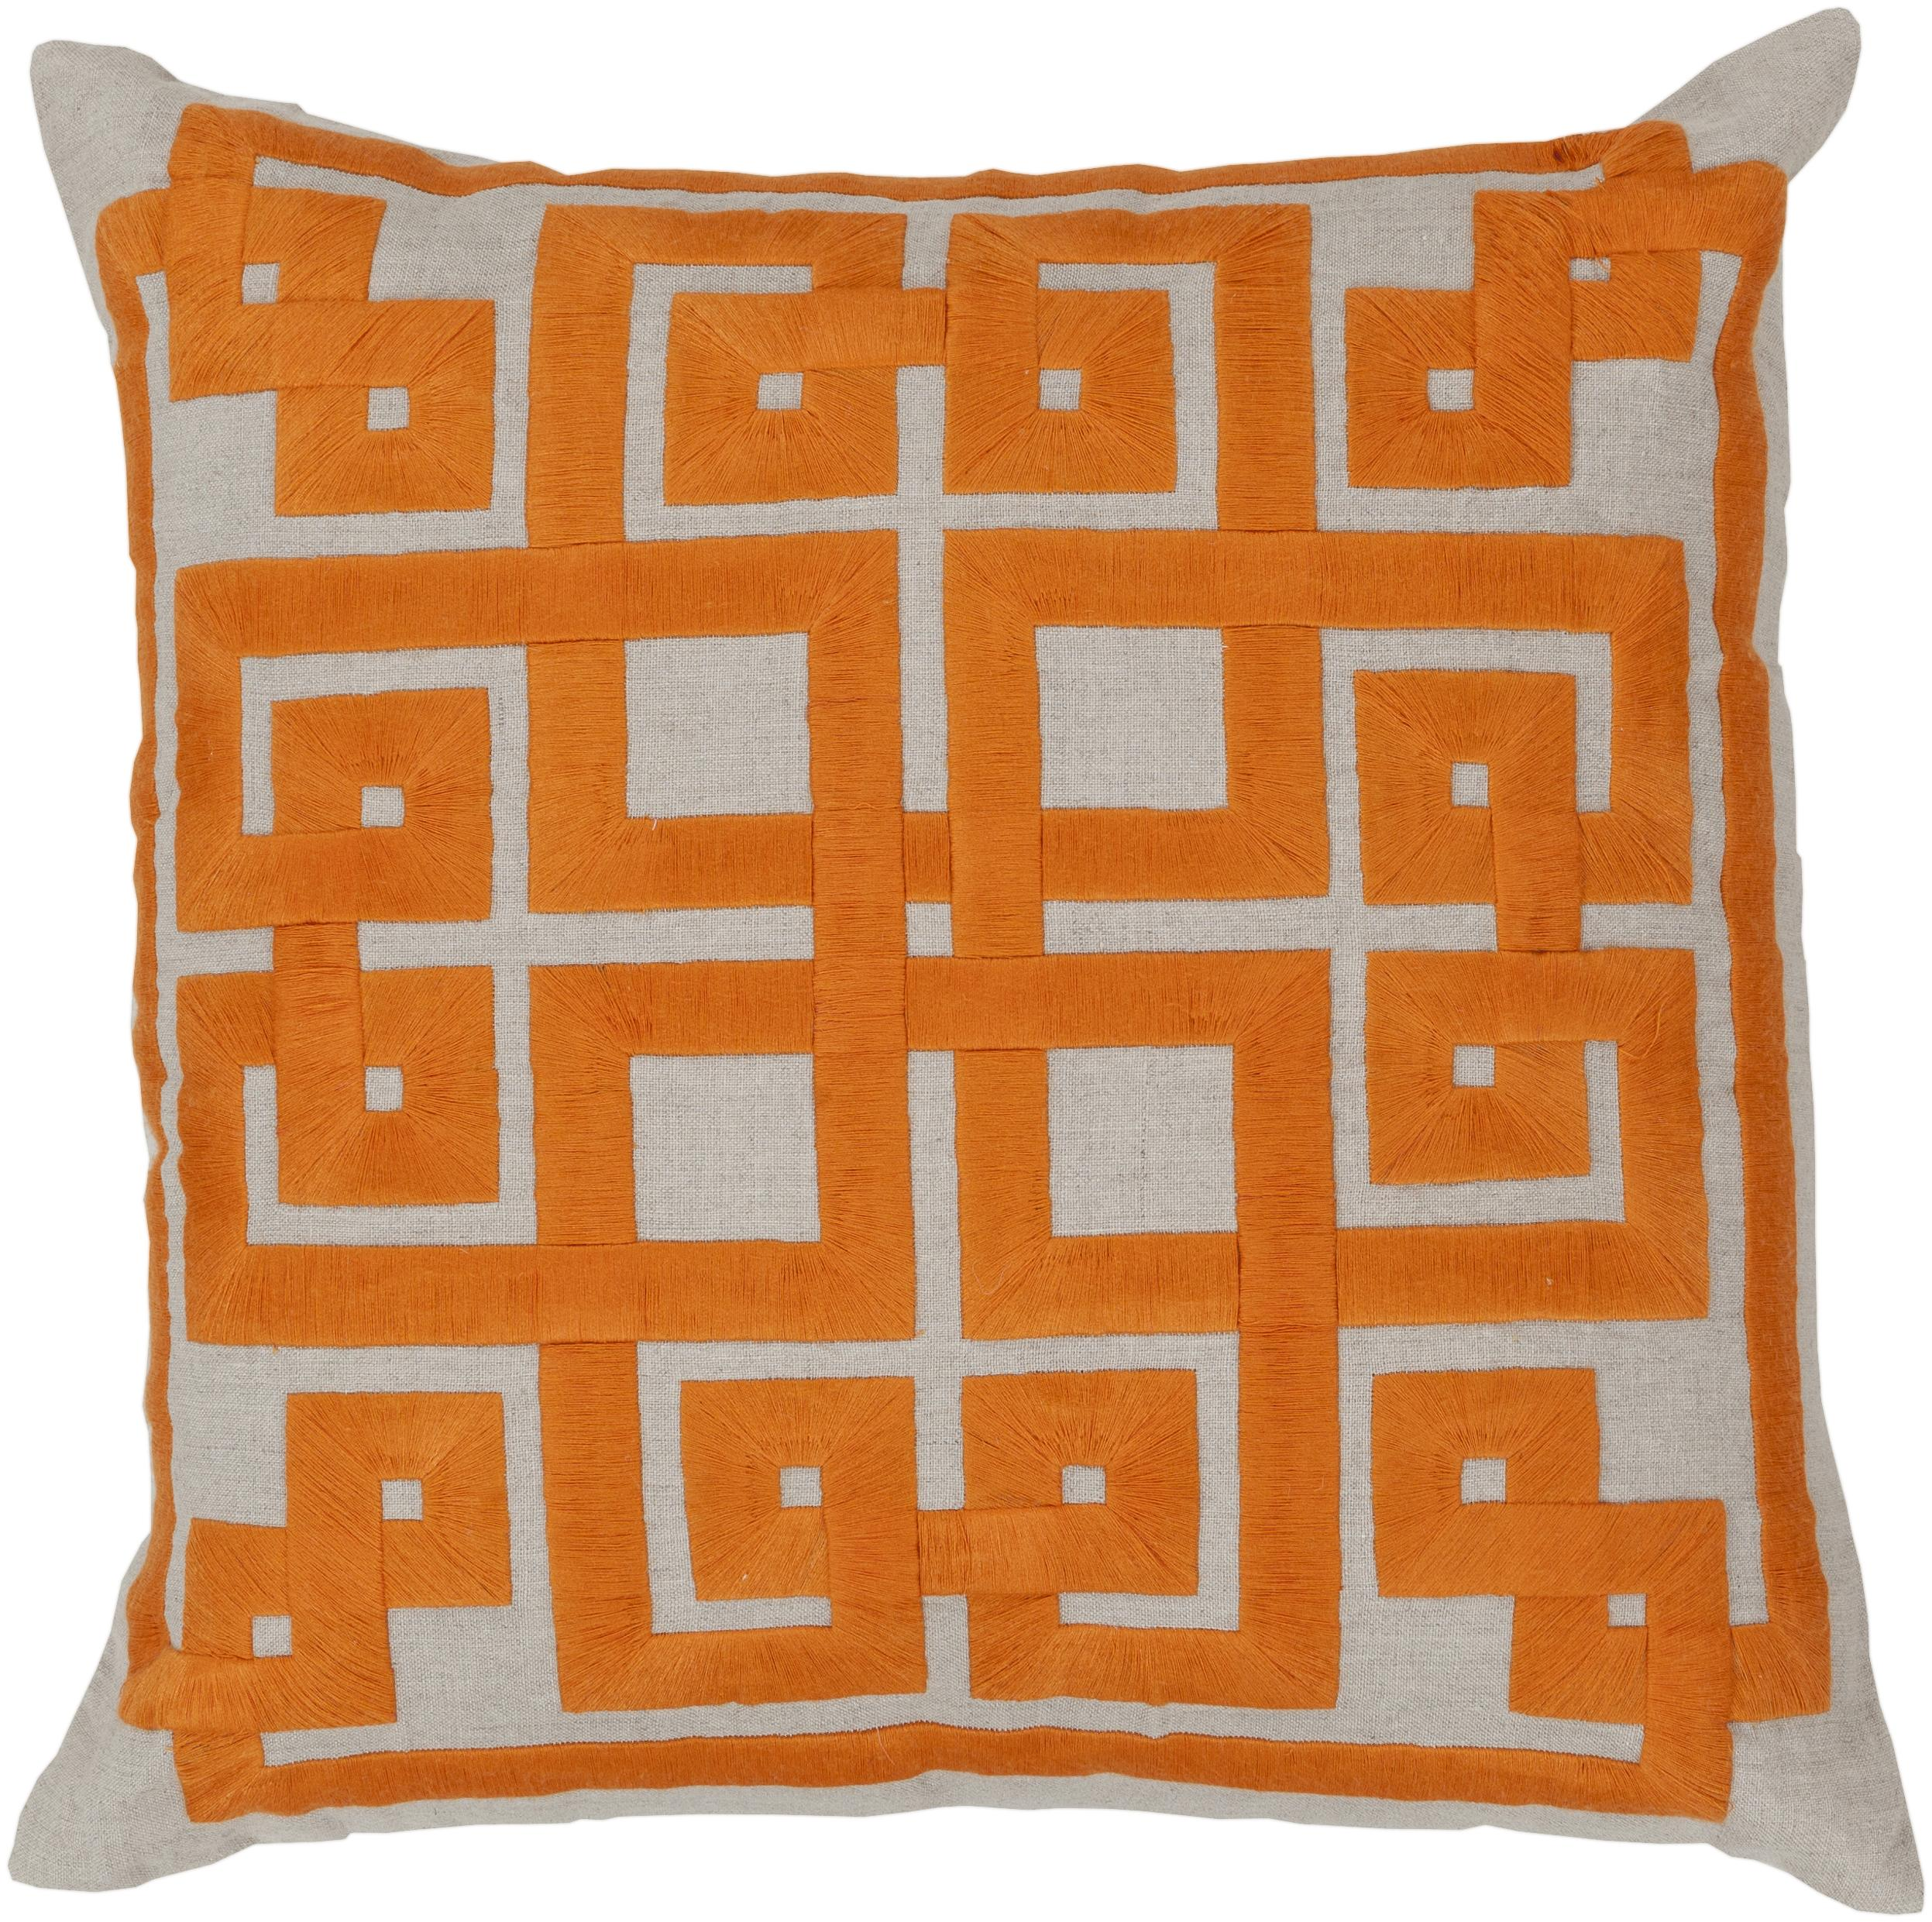 "Surya Pillows 22"" x 22"" Pillow - Item Number: LD003-2222P"